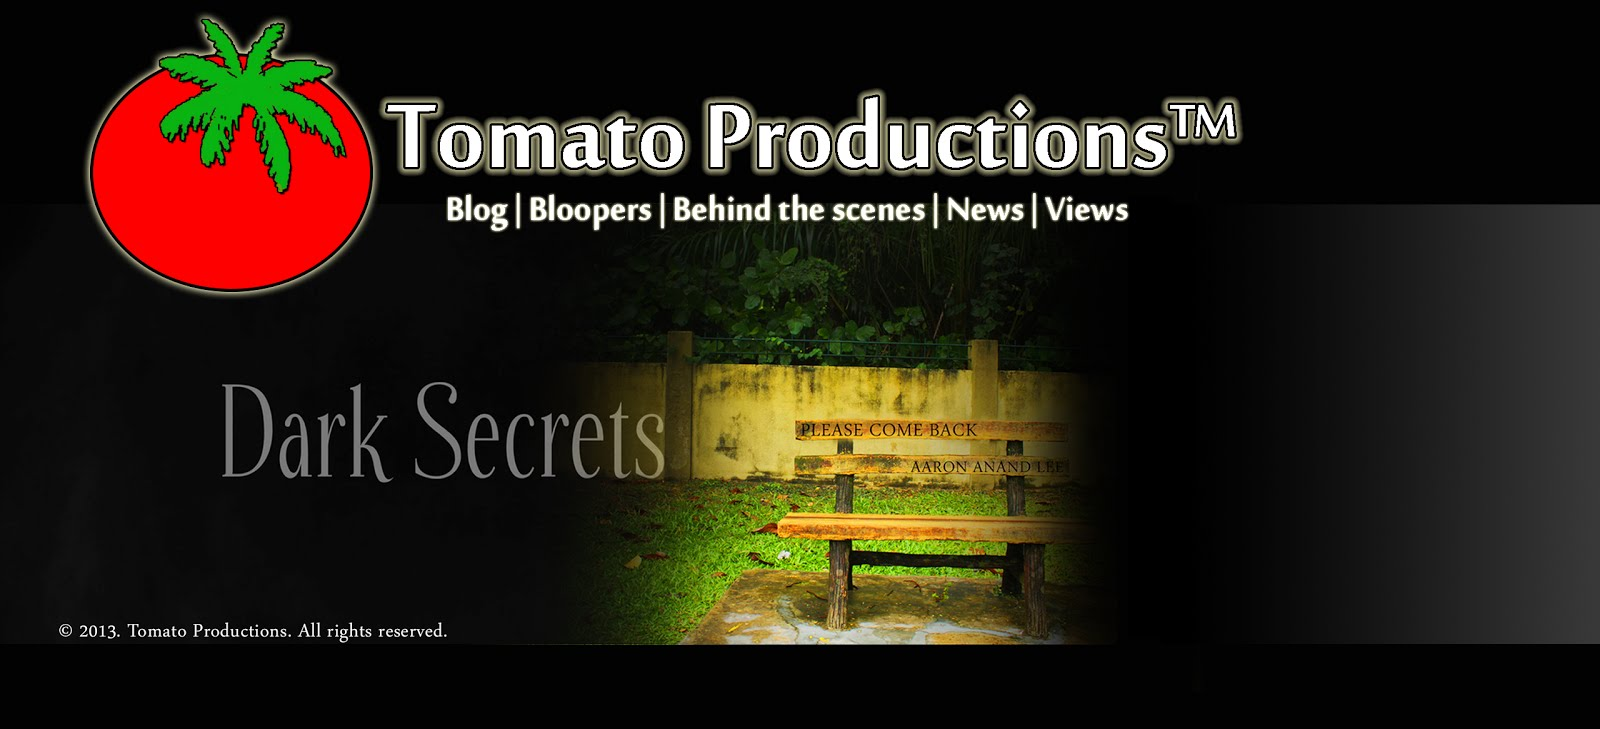 Tomato Productions™